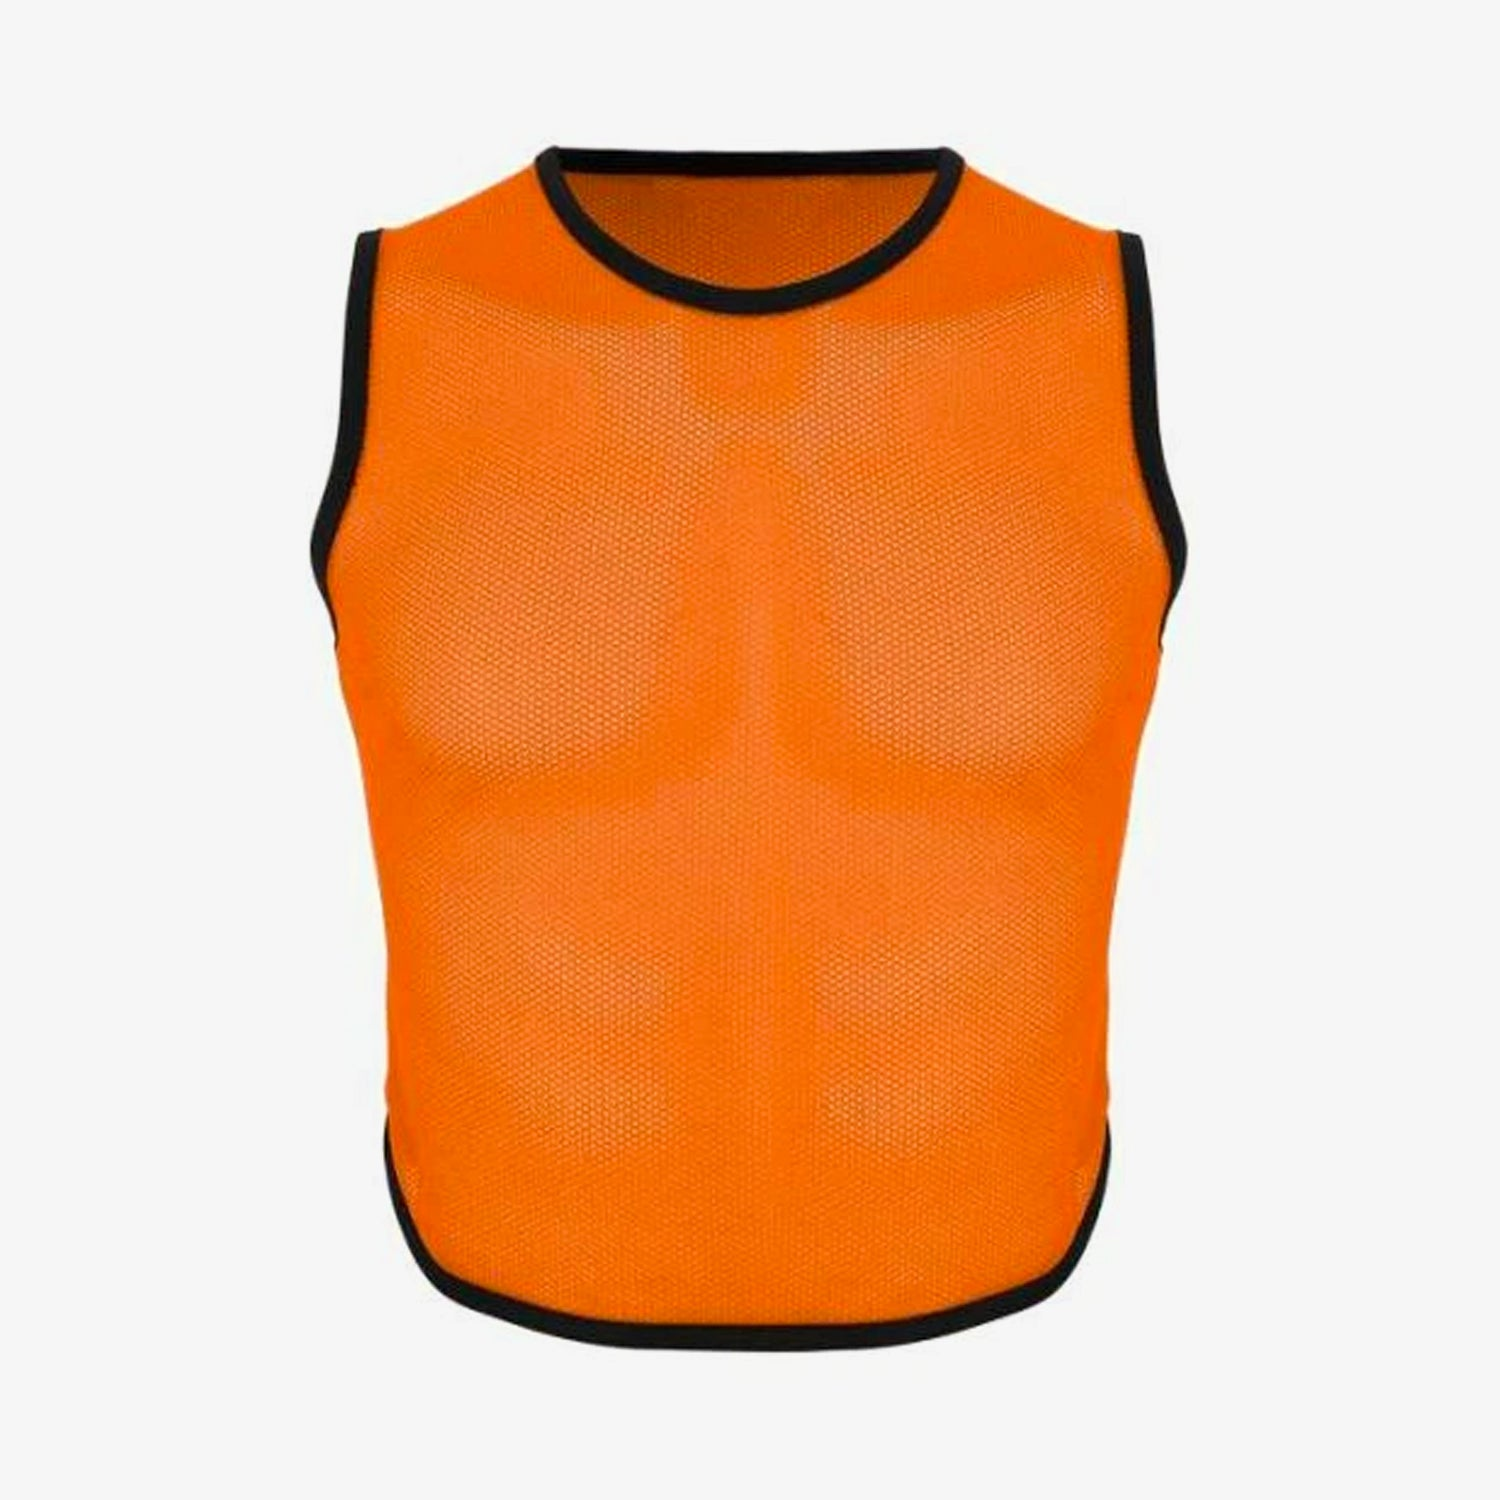 Power Training Vest - Orange